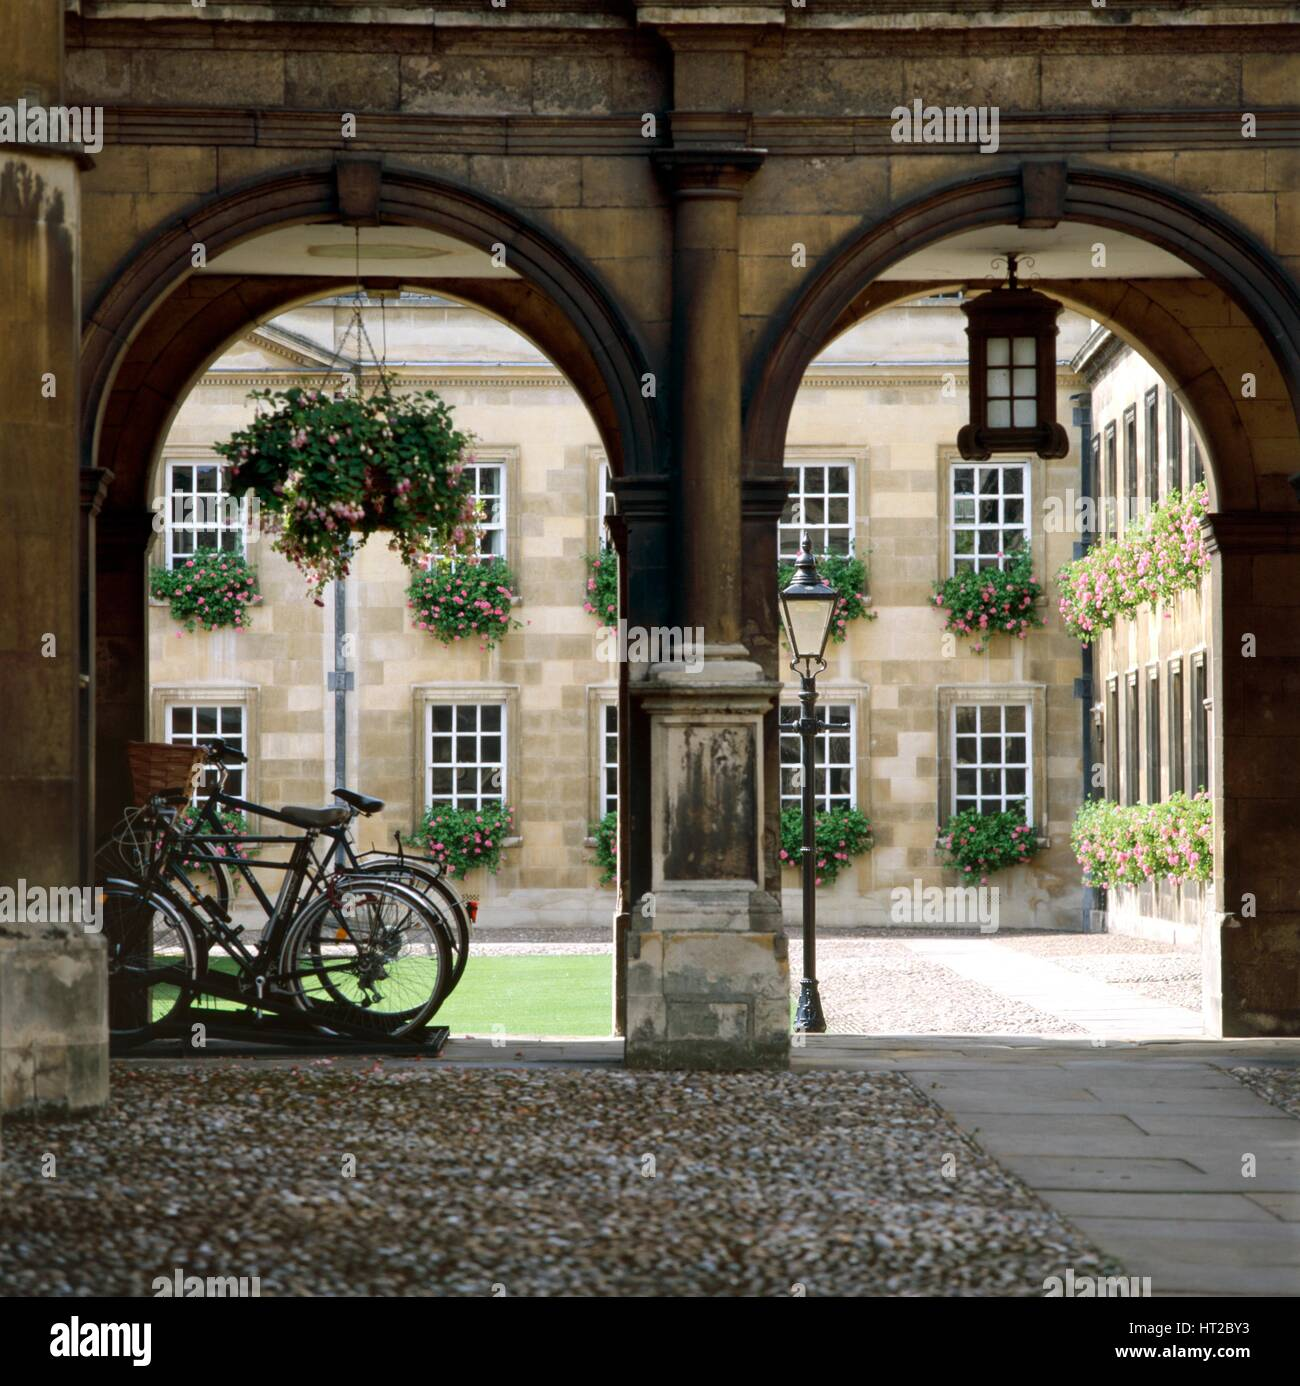 View of the arcade with bicycles, Peterhouse College, Cambridge, Cambridgeshire, c2000s(?). Artist: Unknown. - Stock Image